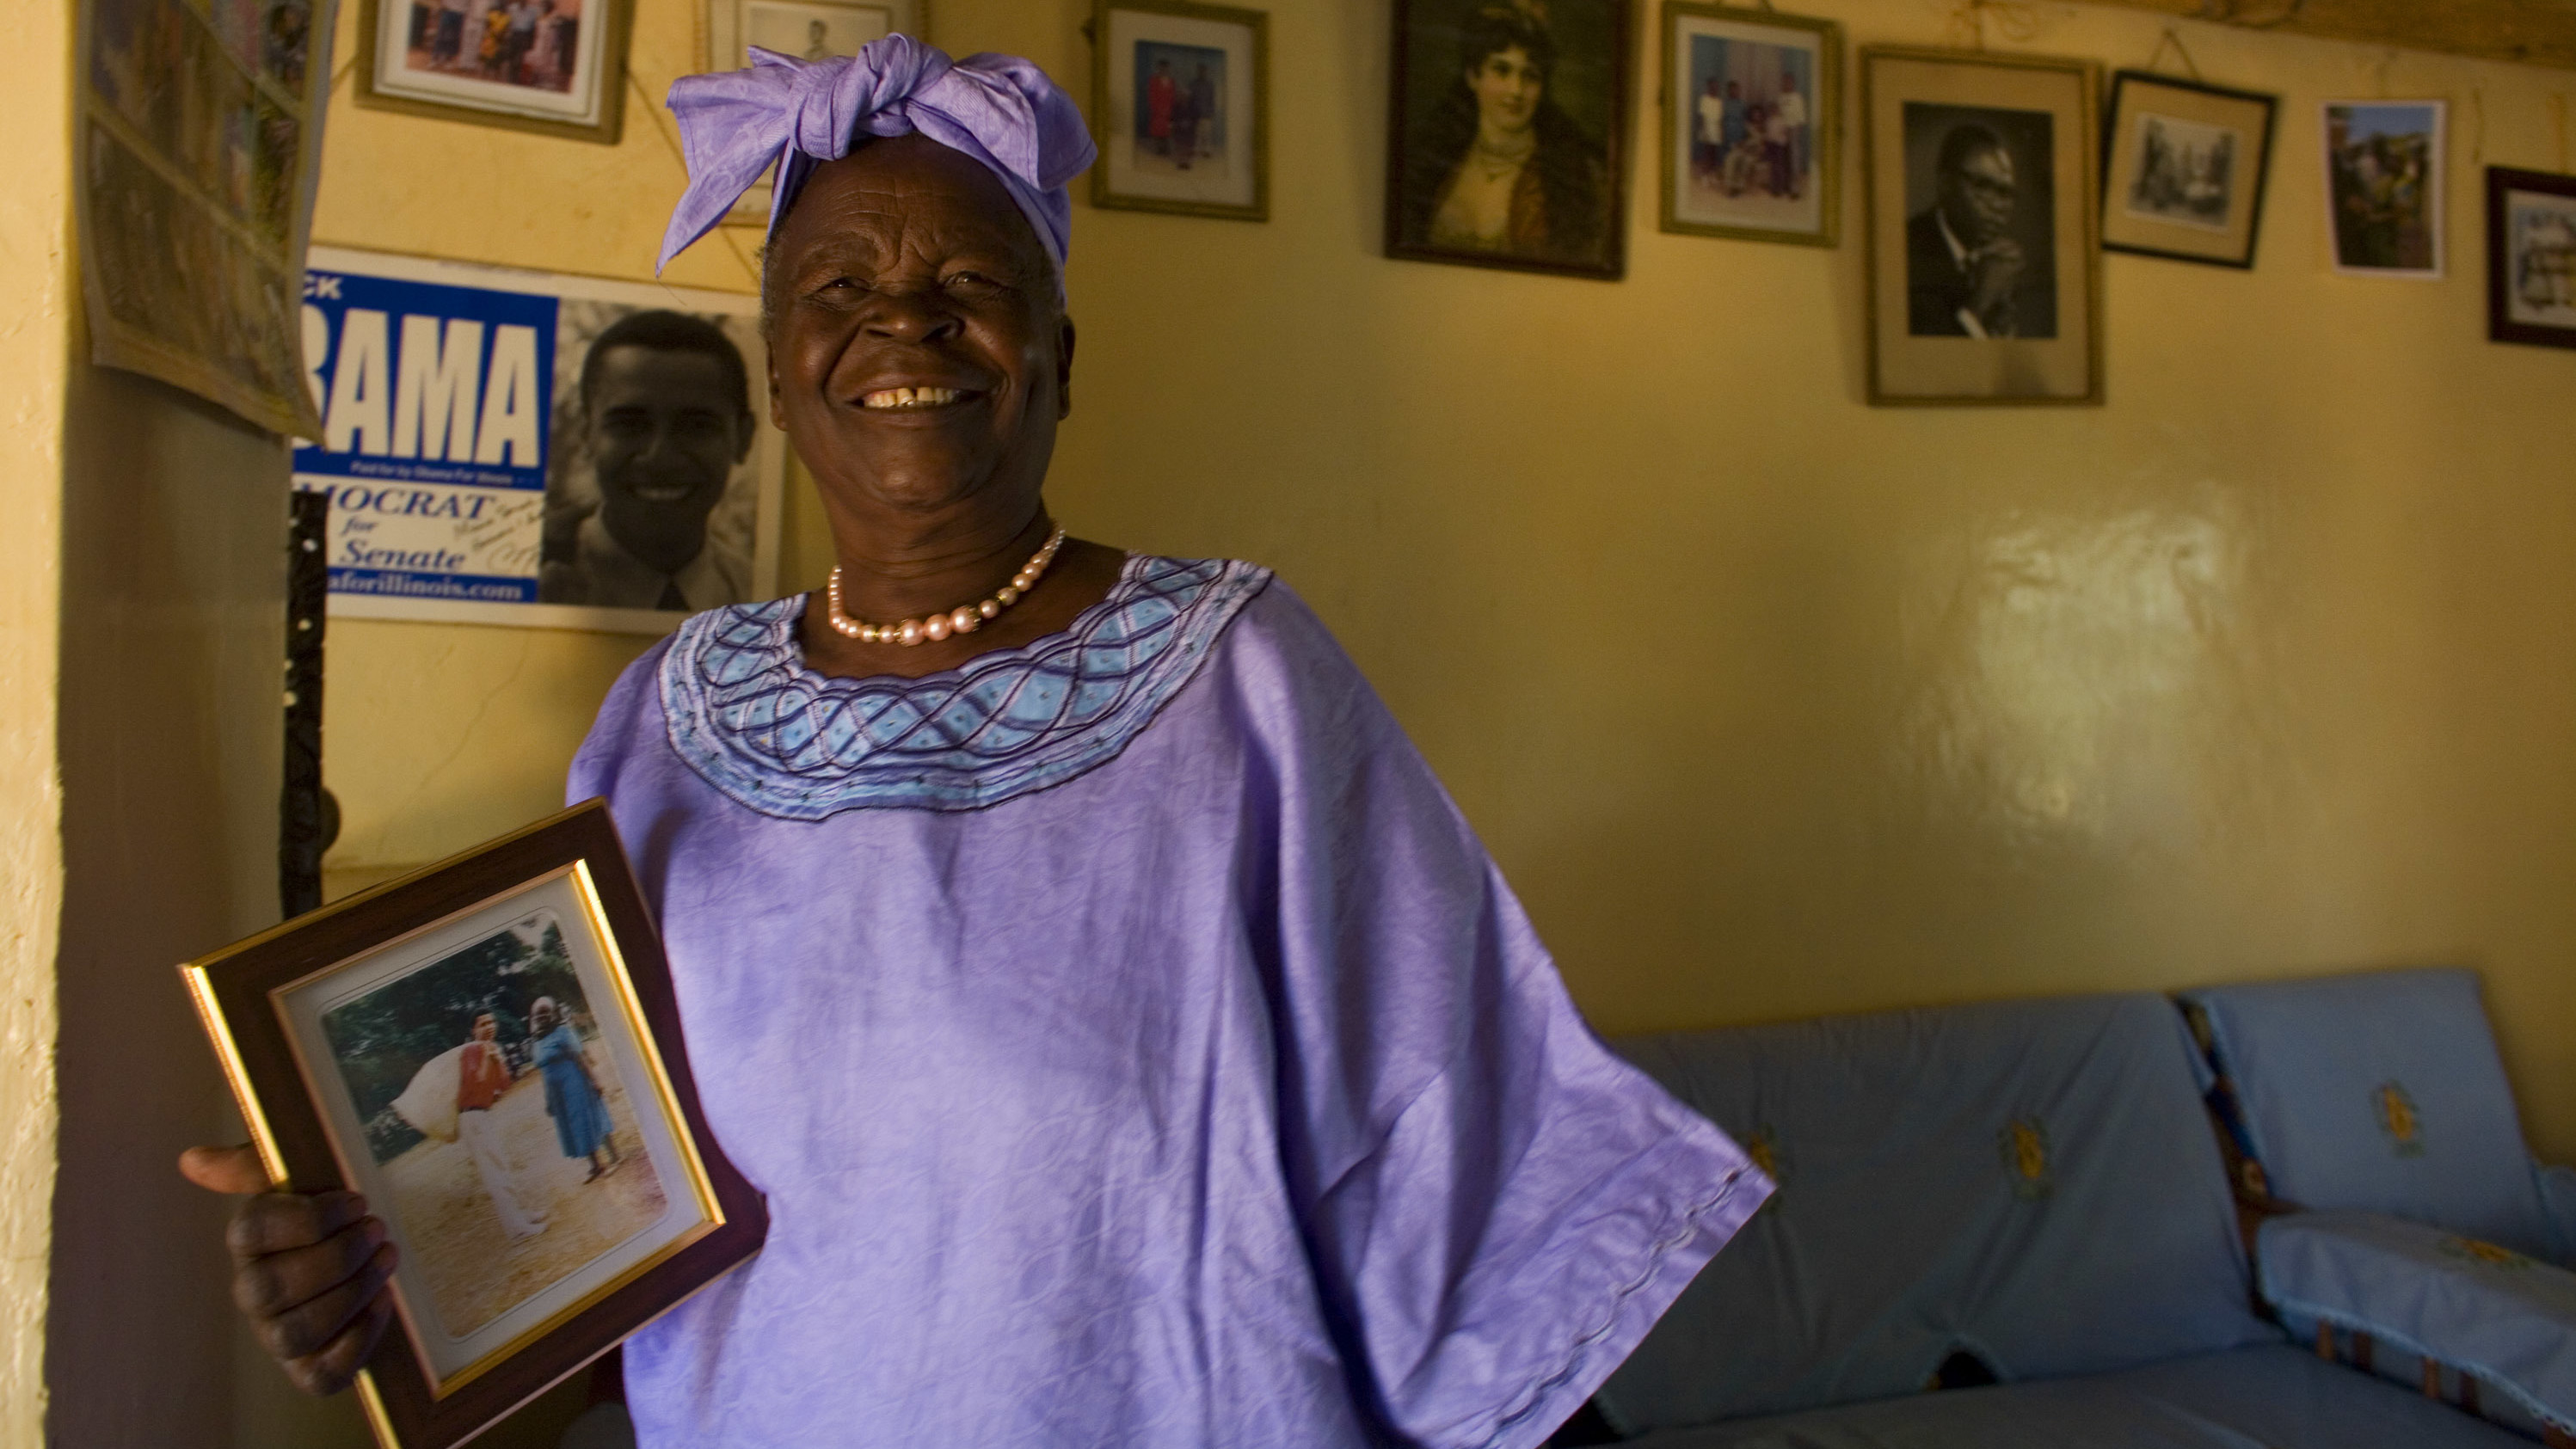 Sarah Obama holds a photograph of her grandson, Barack Obama in Kogelo, Kenya while awaiting the results of Super Tuesday's primary in Feb. 2008. She died on Monday after a brief illness, and is being remembered as a beloved matriarch and philanthropist.